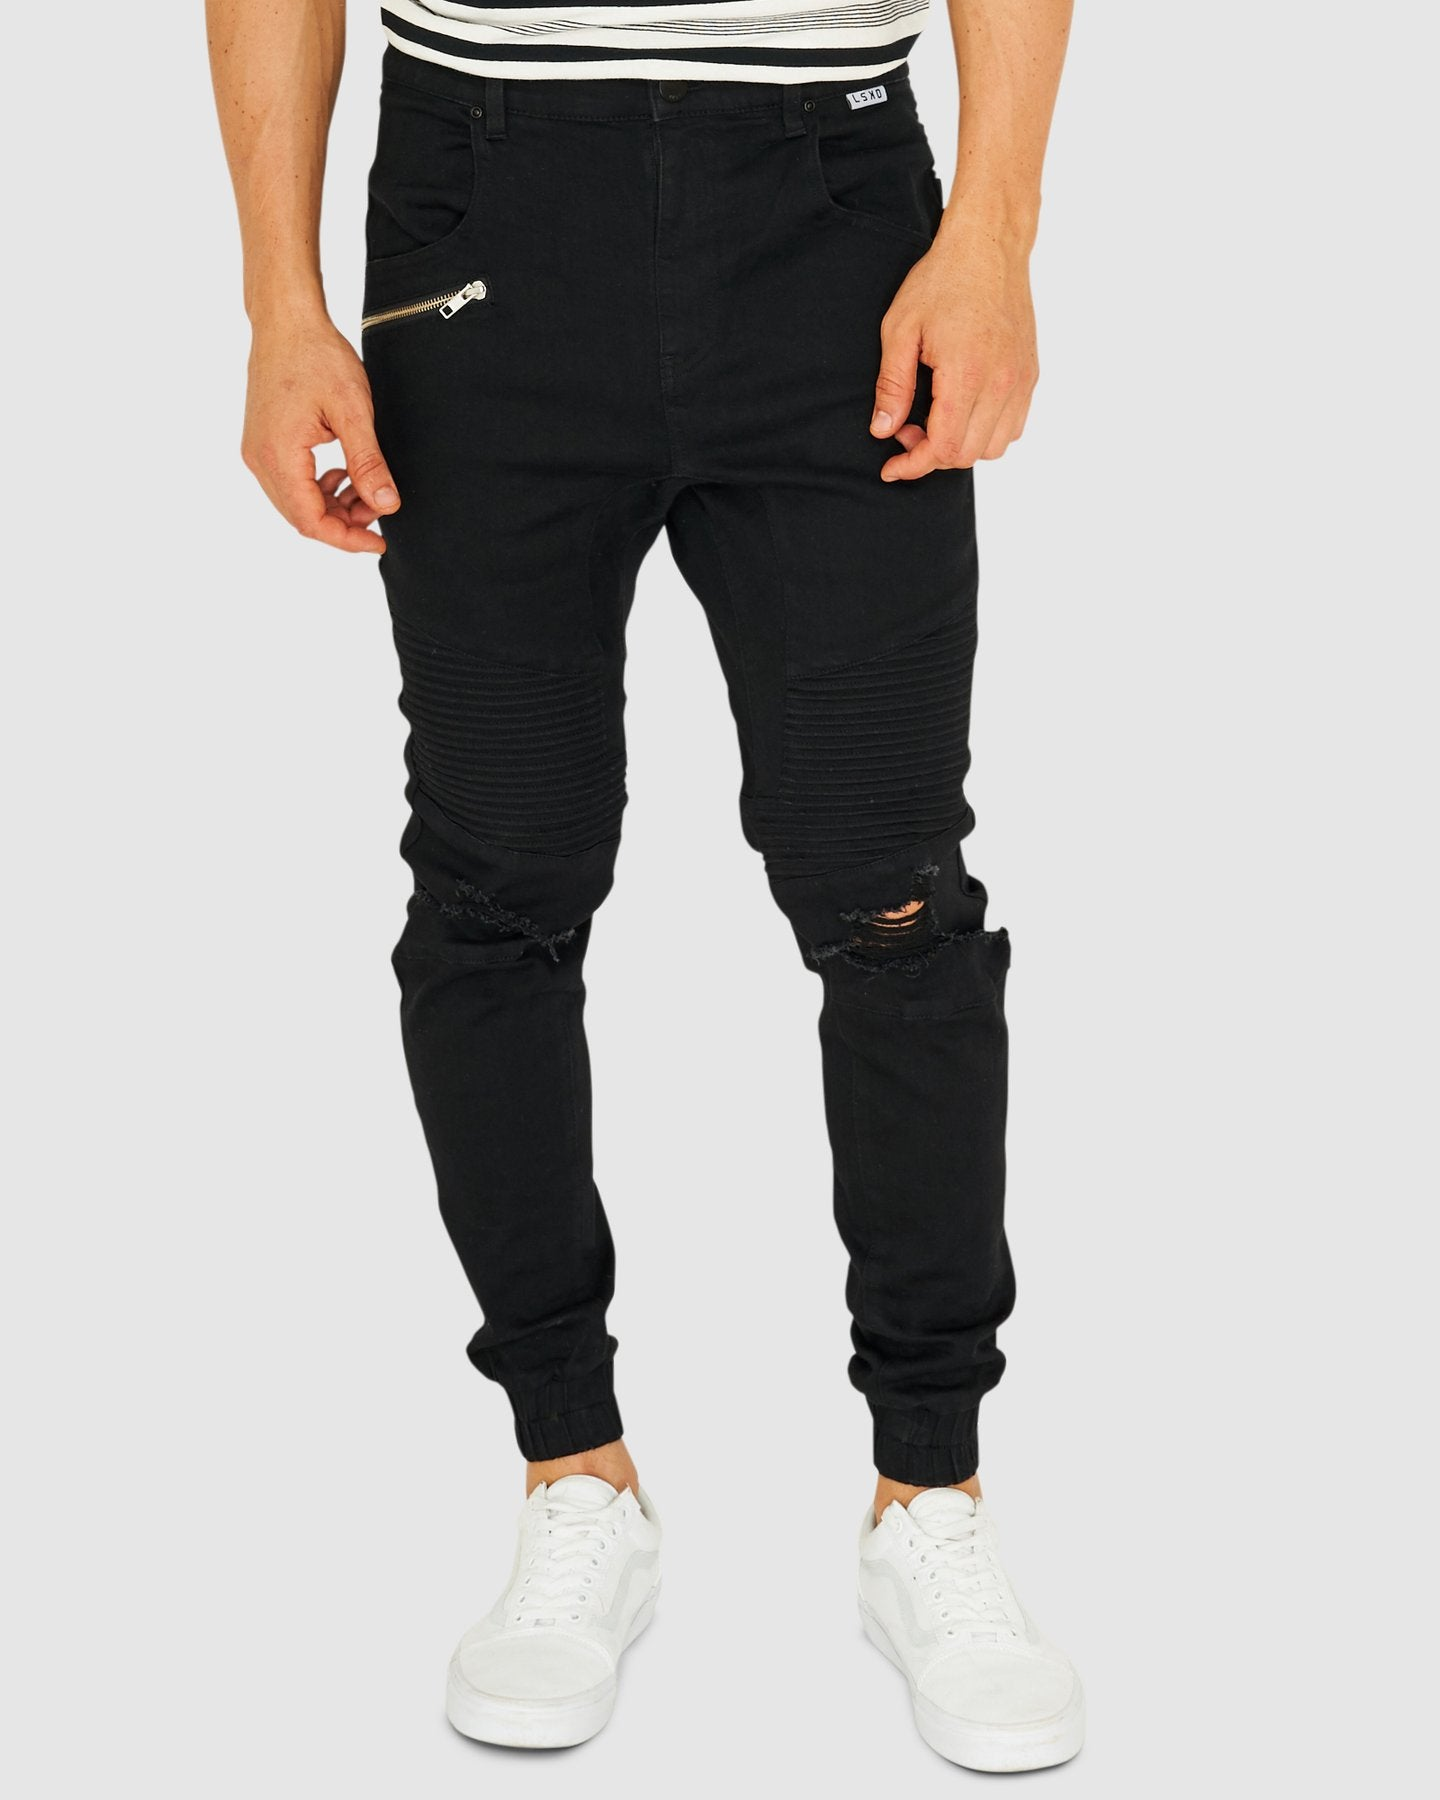 Torment Denim Pants - Black - 34